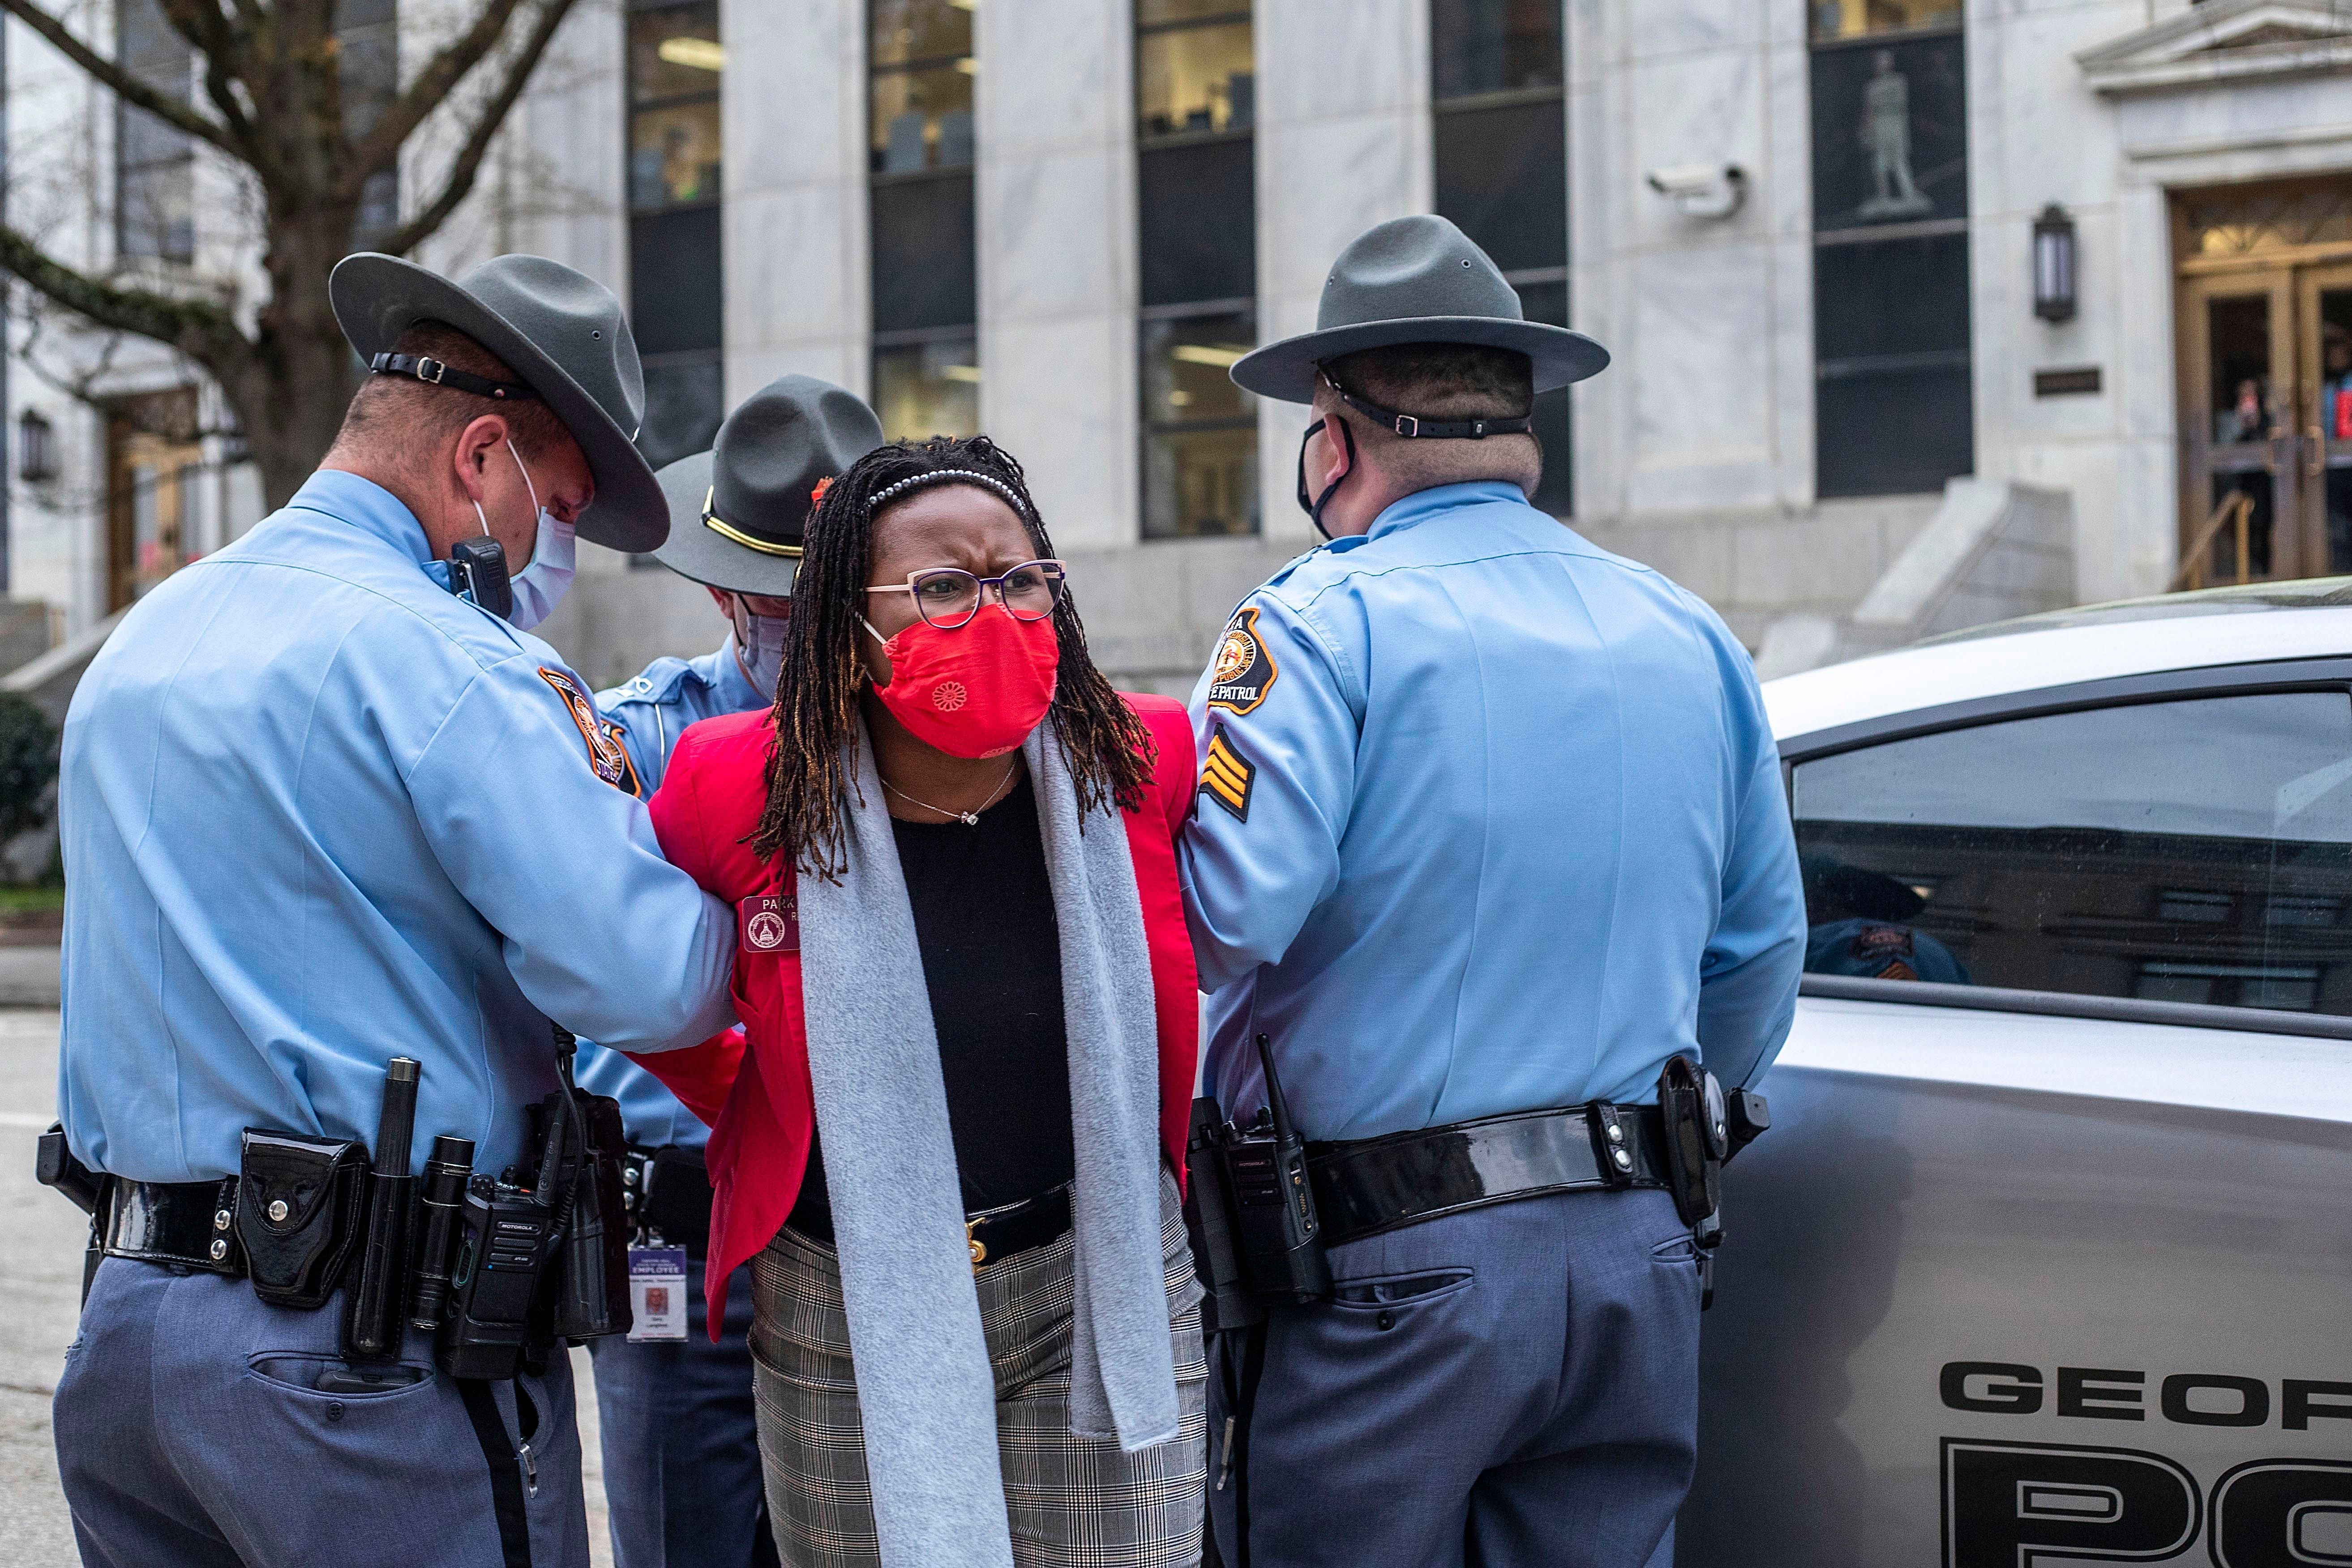 State Rep. Park Cannon (D) is placed into the back of a Georgia State Capitol patrol car after being arrested by Georgia stat